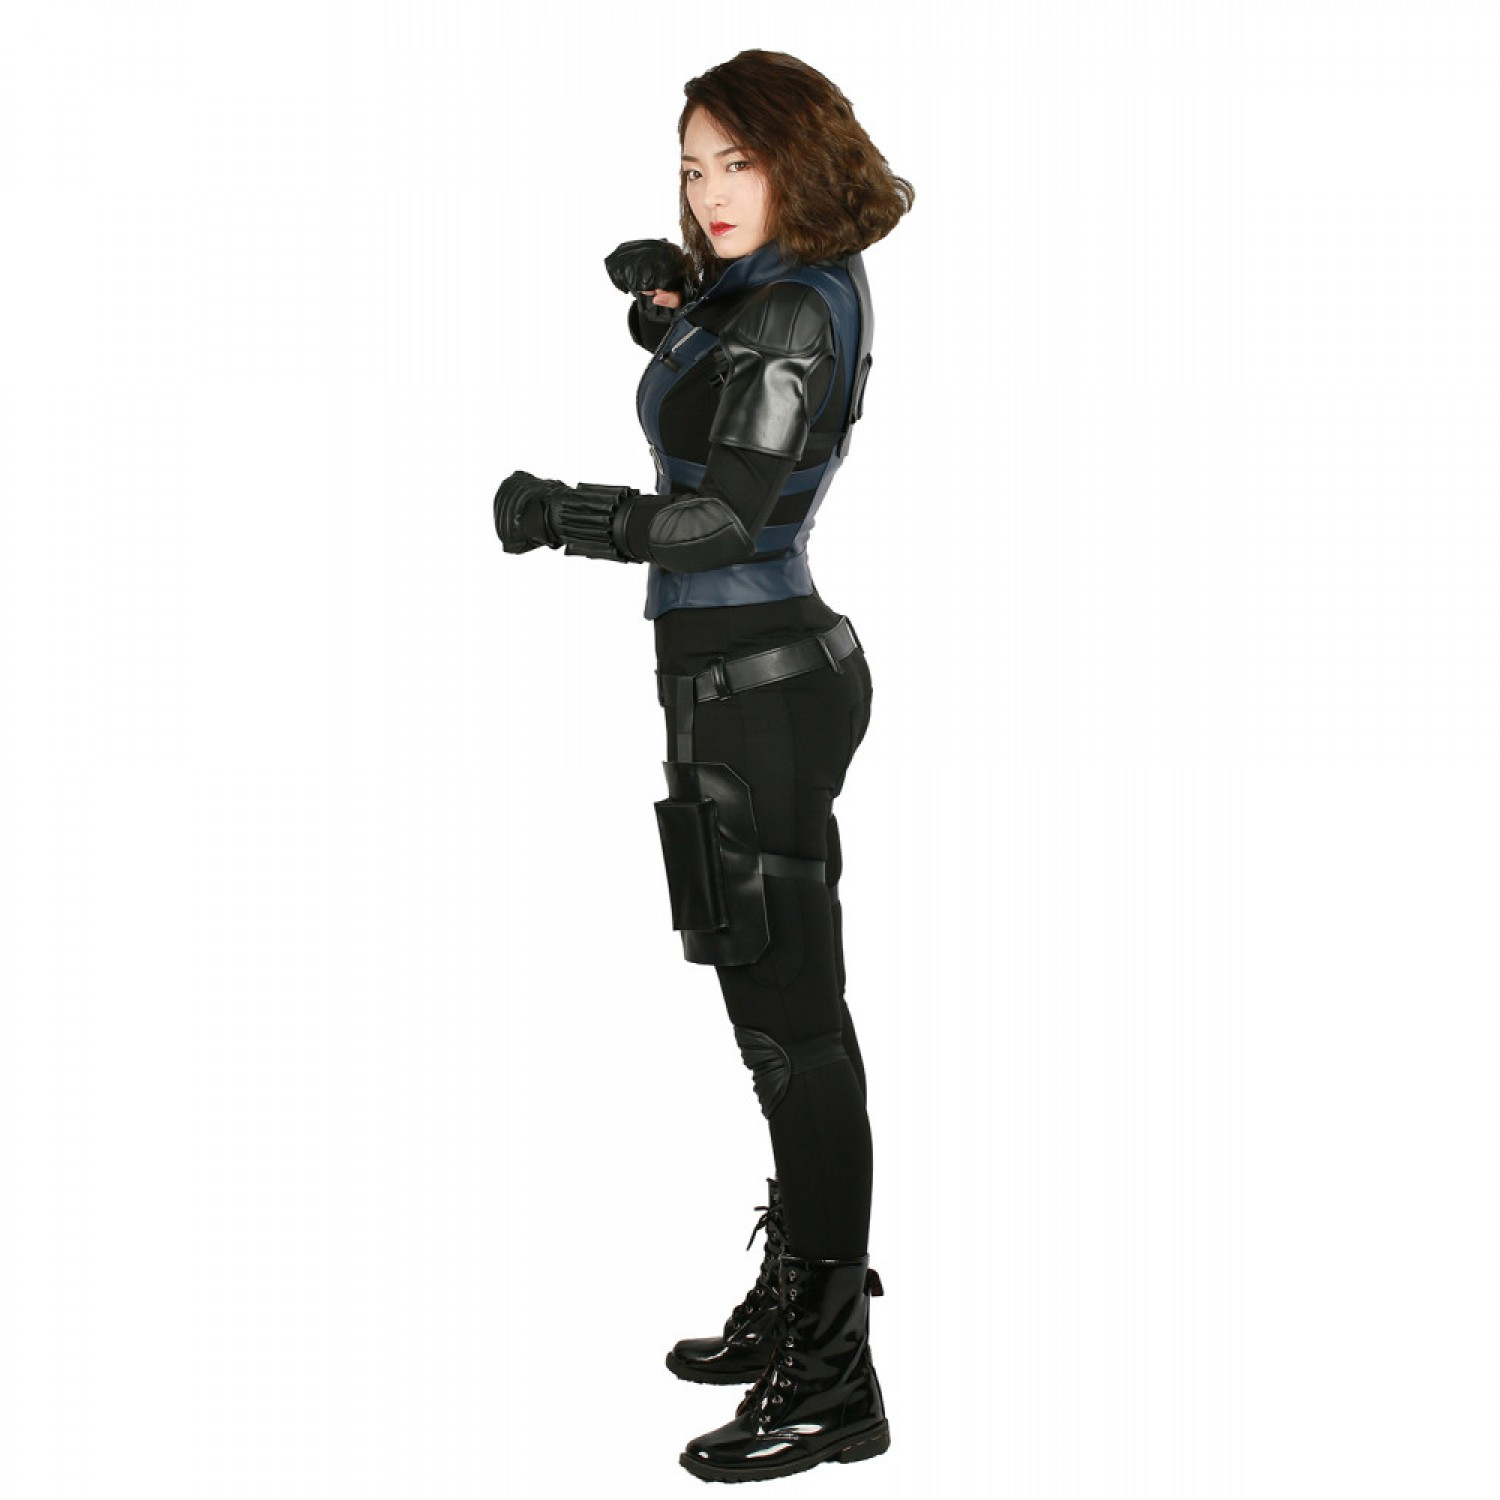 Avengers Infinity War Black Widow PU Leather Cosplay Costume